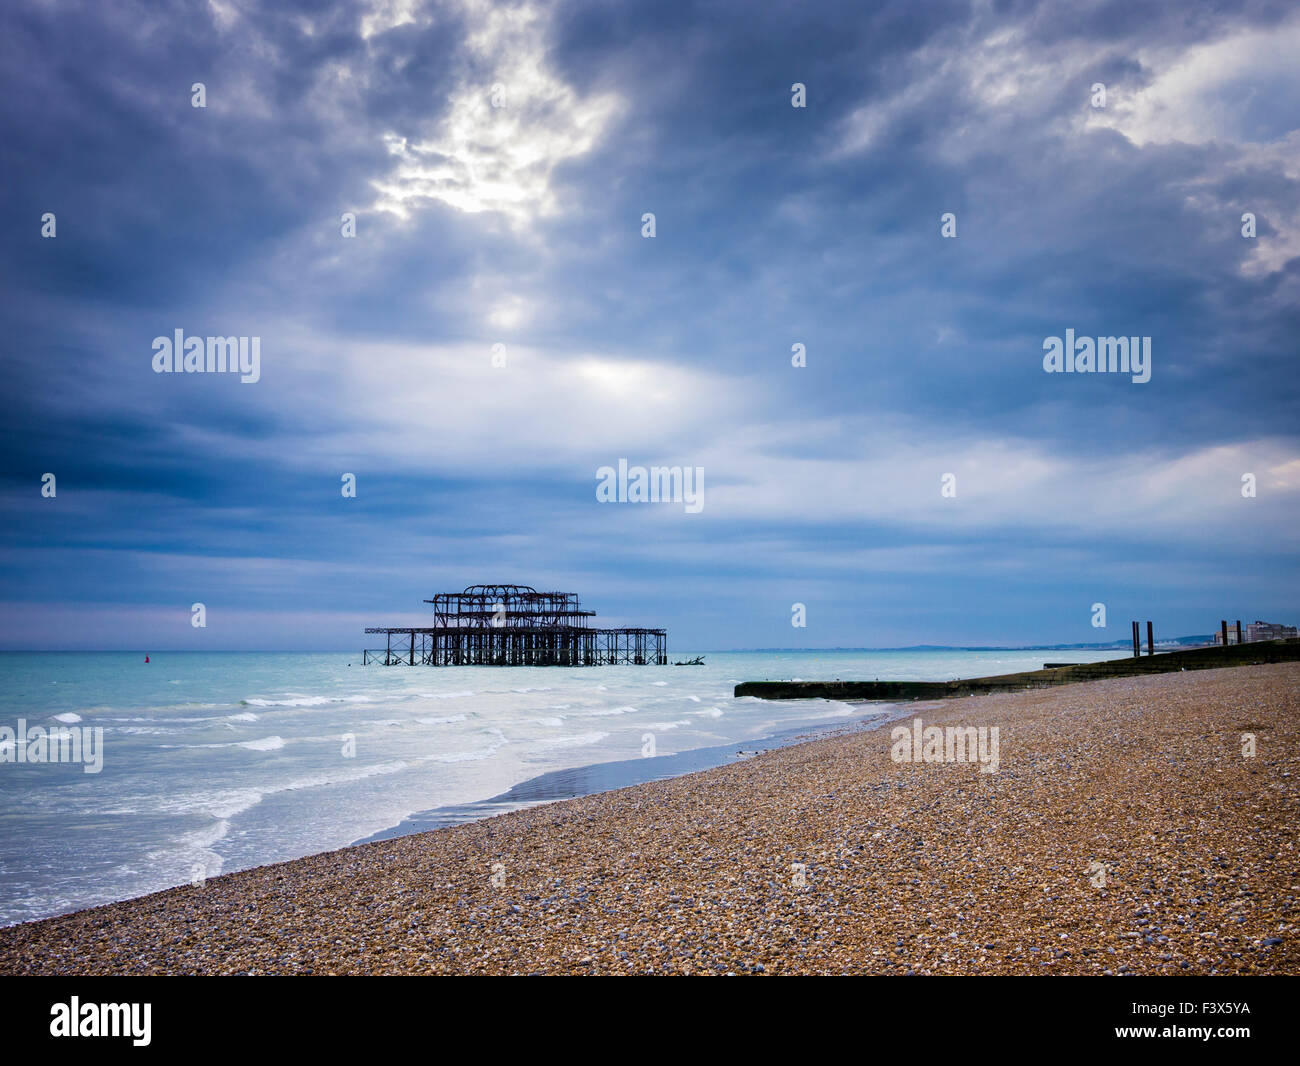 The remains of West Pier at Brighton and Hove, East Sussex, England. - Stock Image